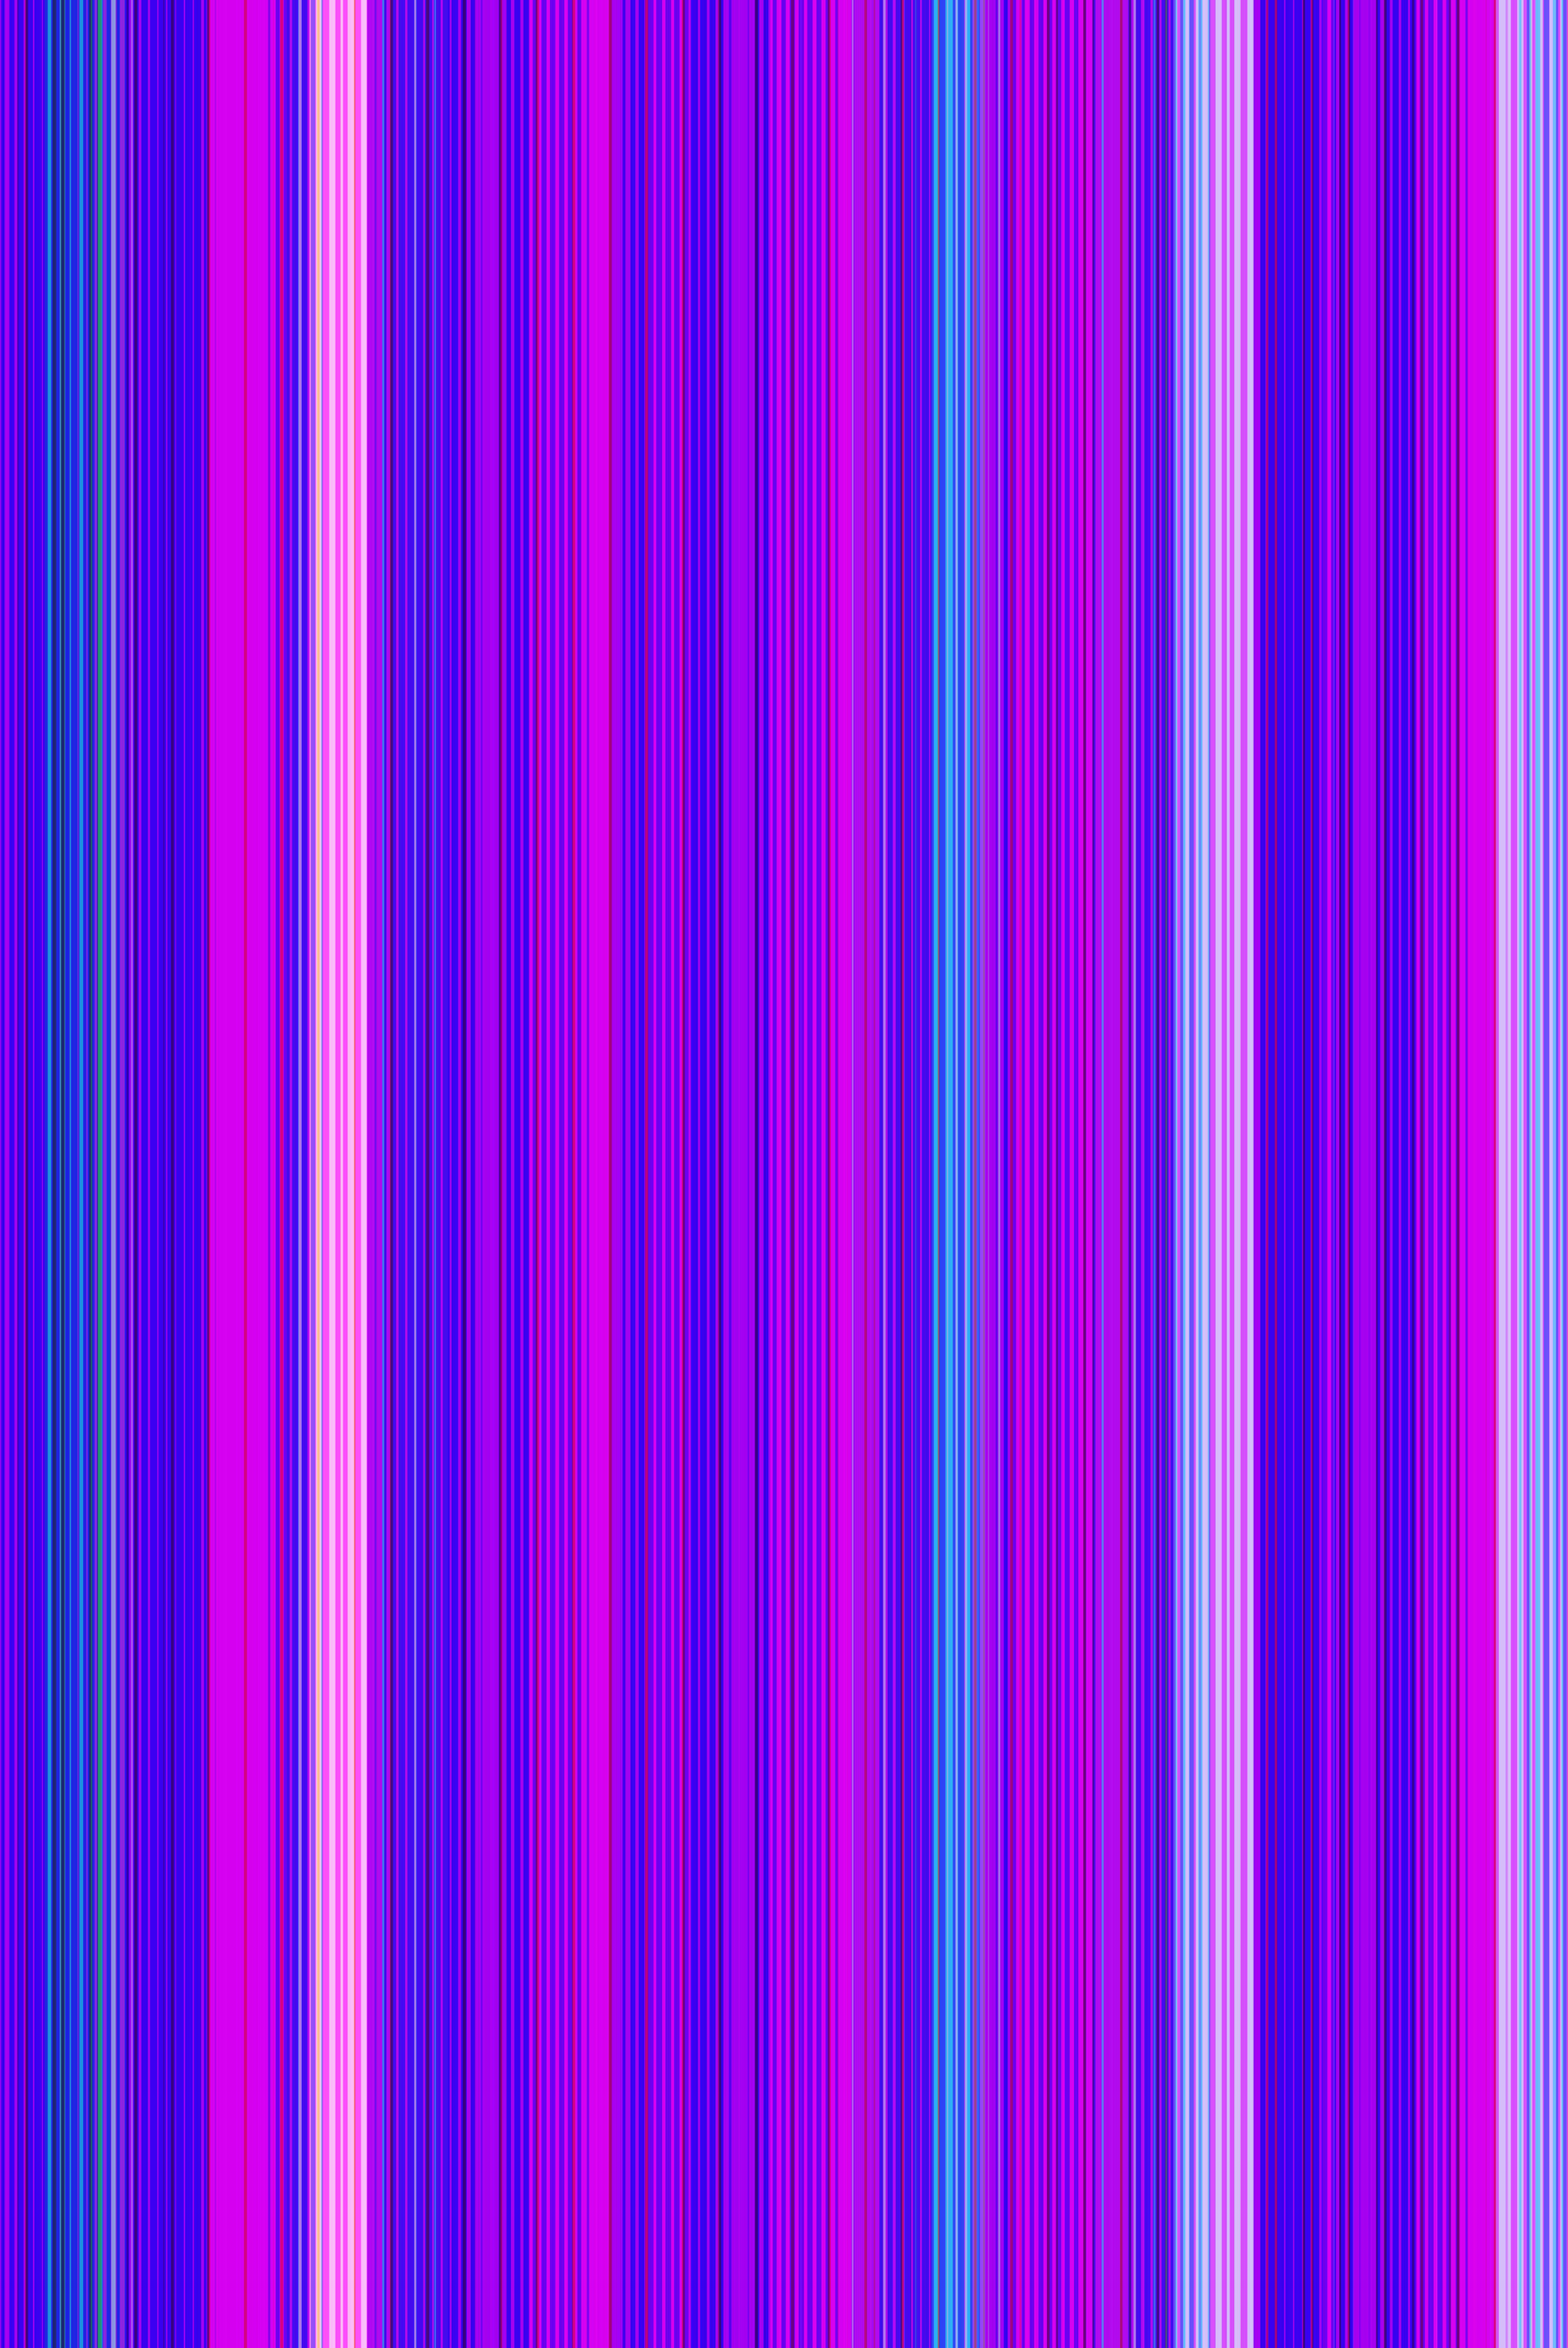 Free stock photo 1504 vivid pink purple bars freeimageslive bright pink and purple palette creating a background vertical lines junglespirit Choice Image